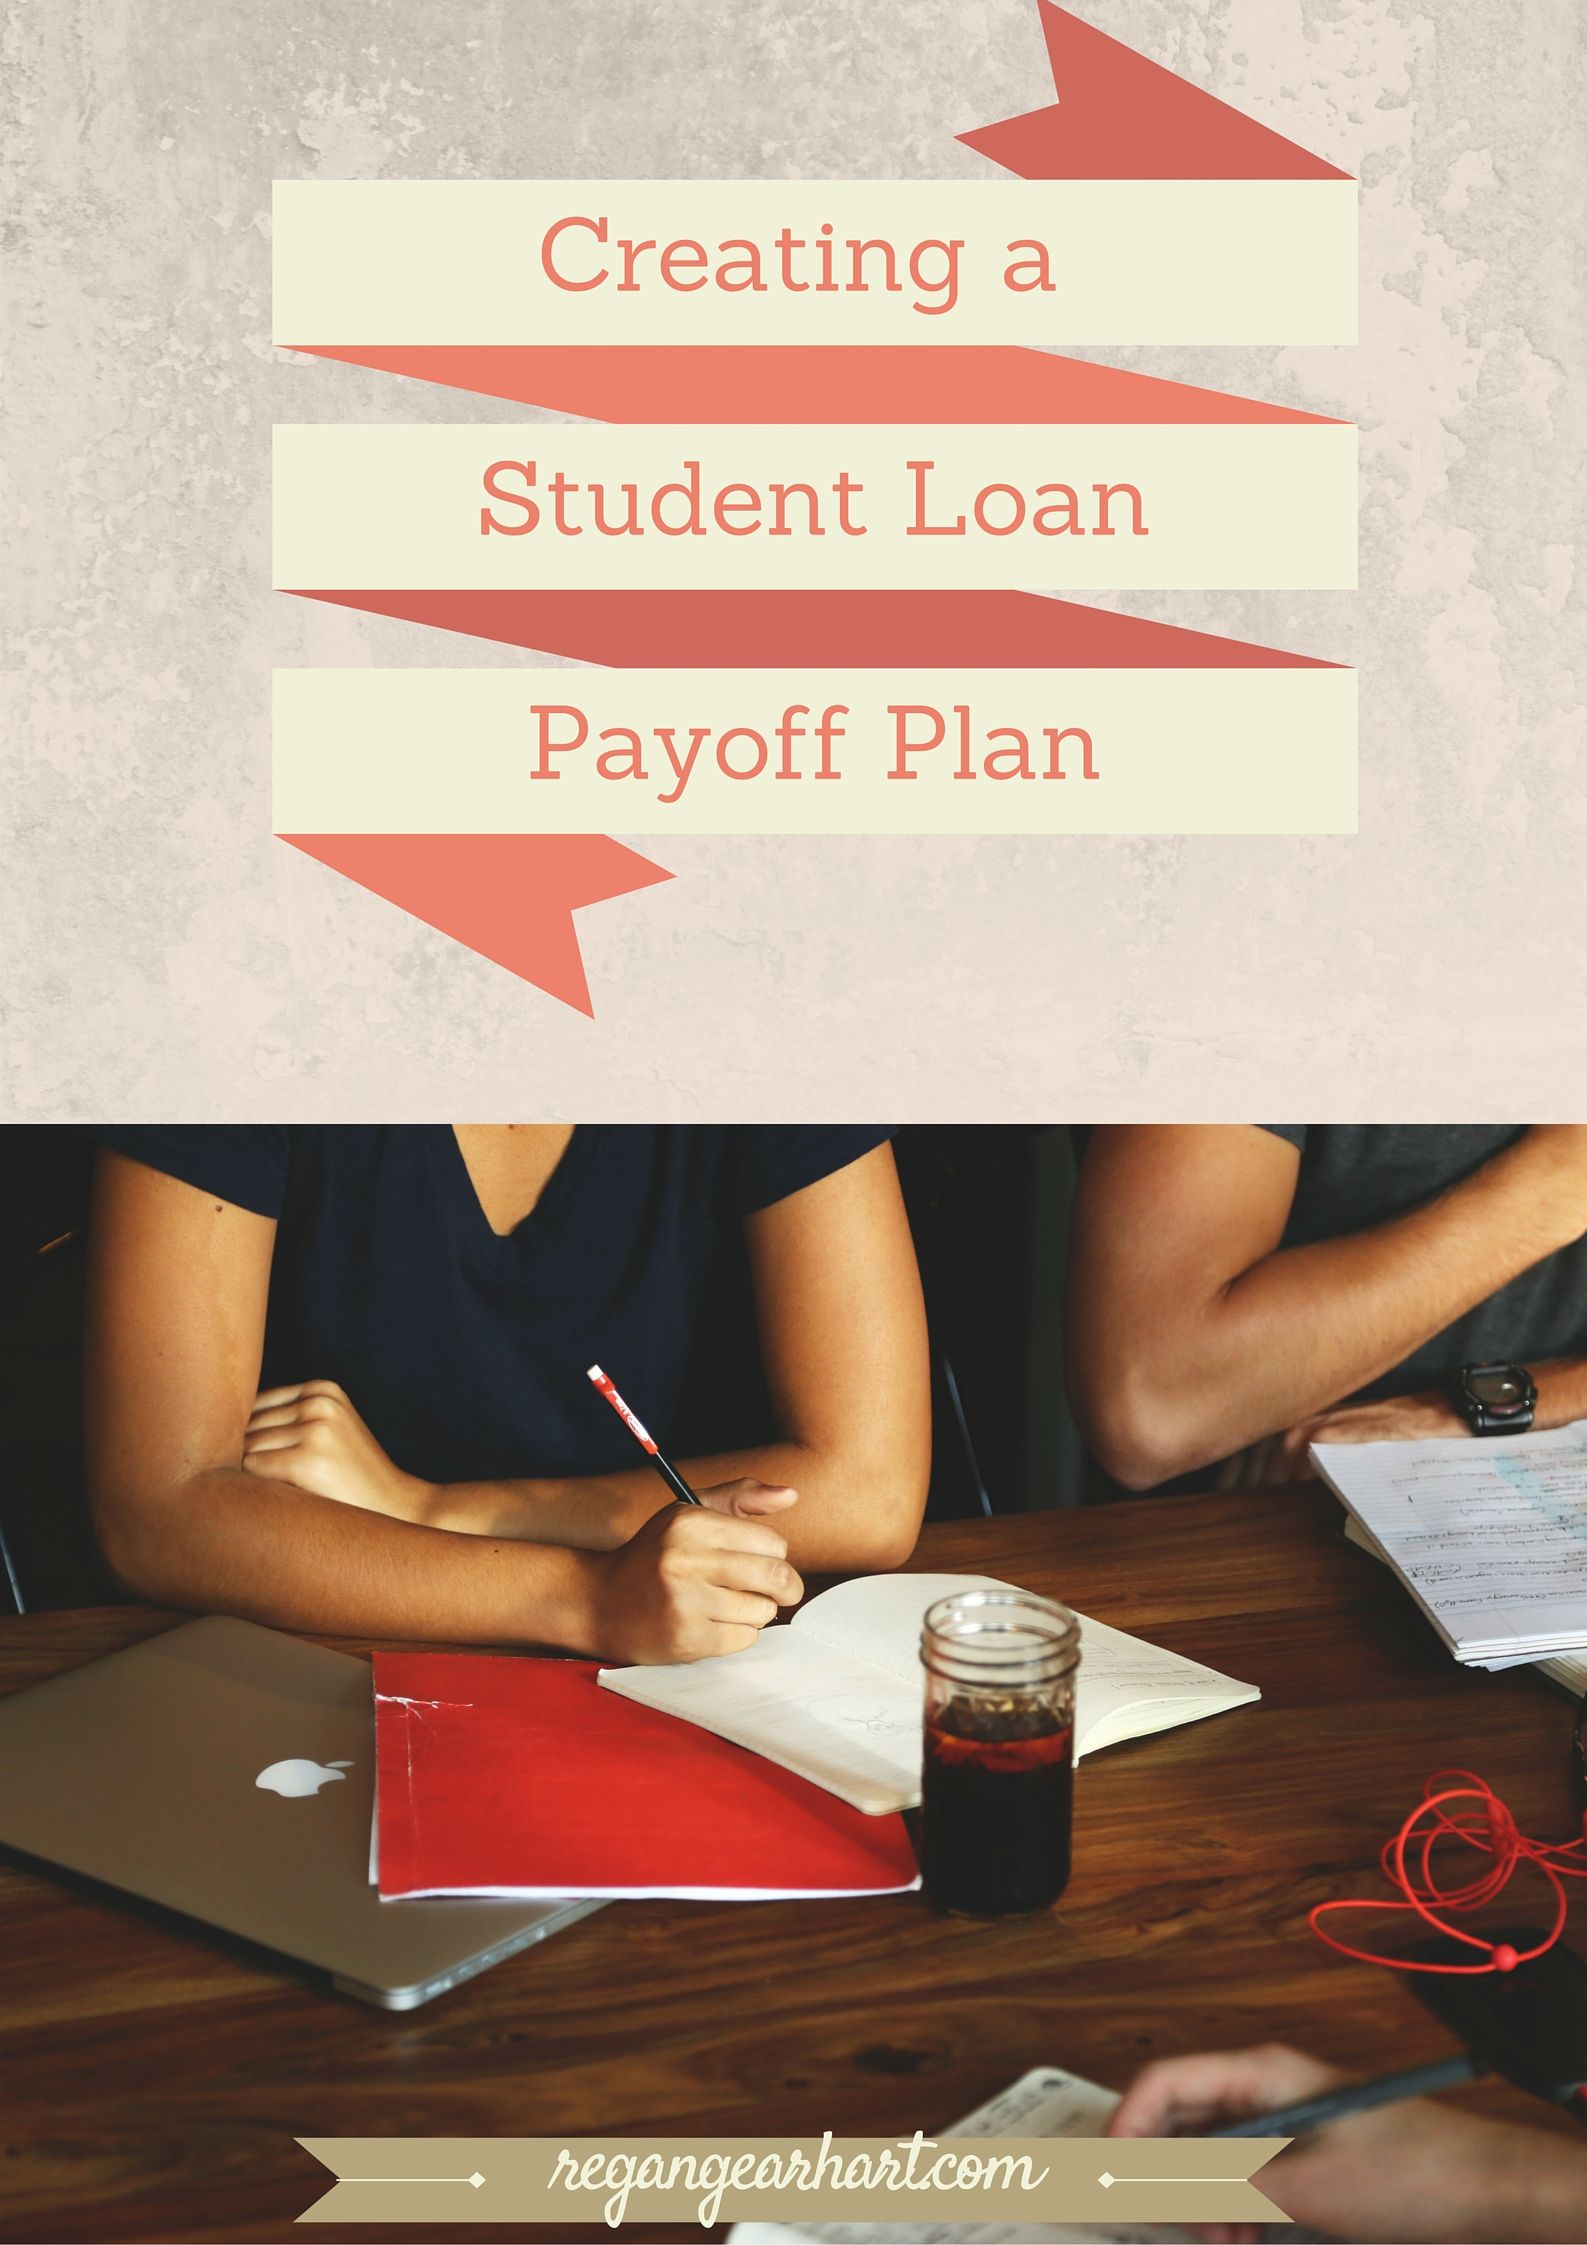 Creating A Student Loan Payoff Plan